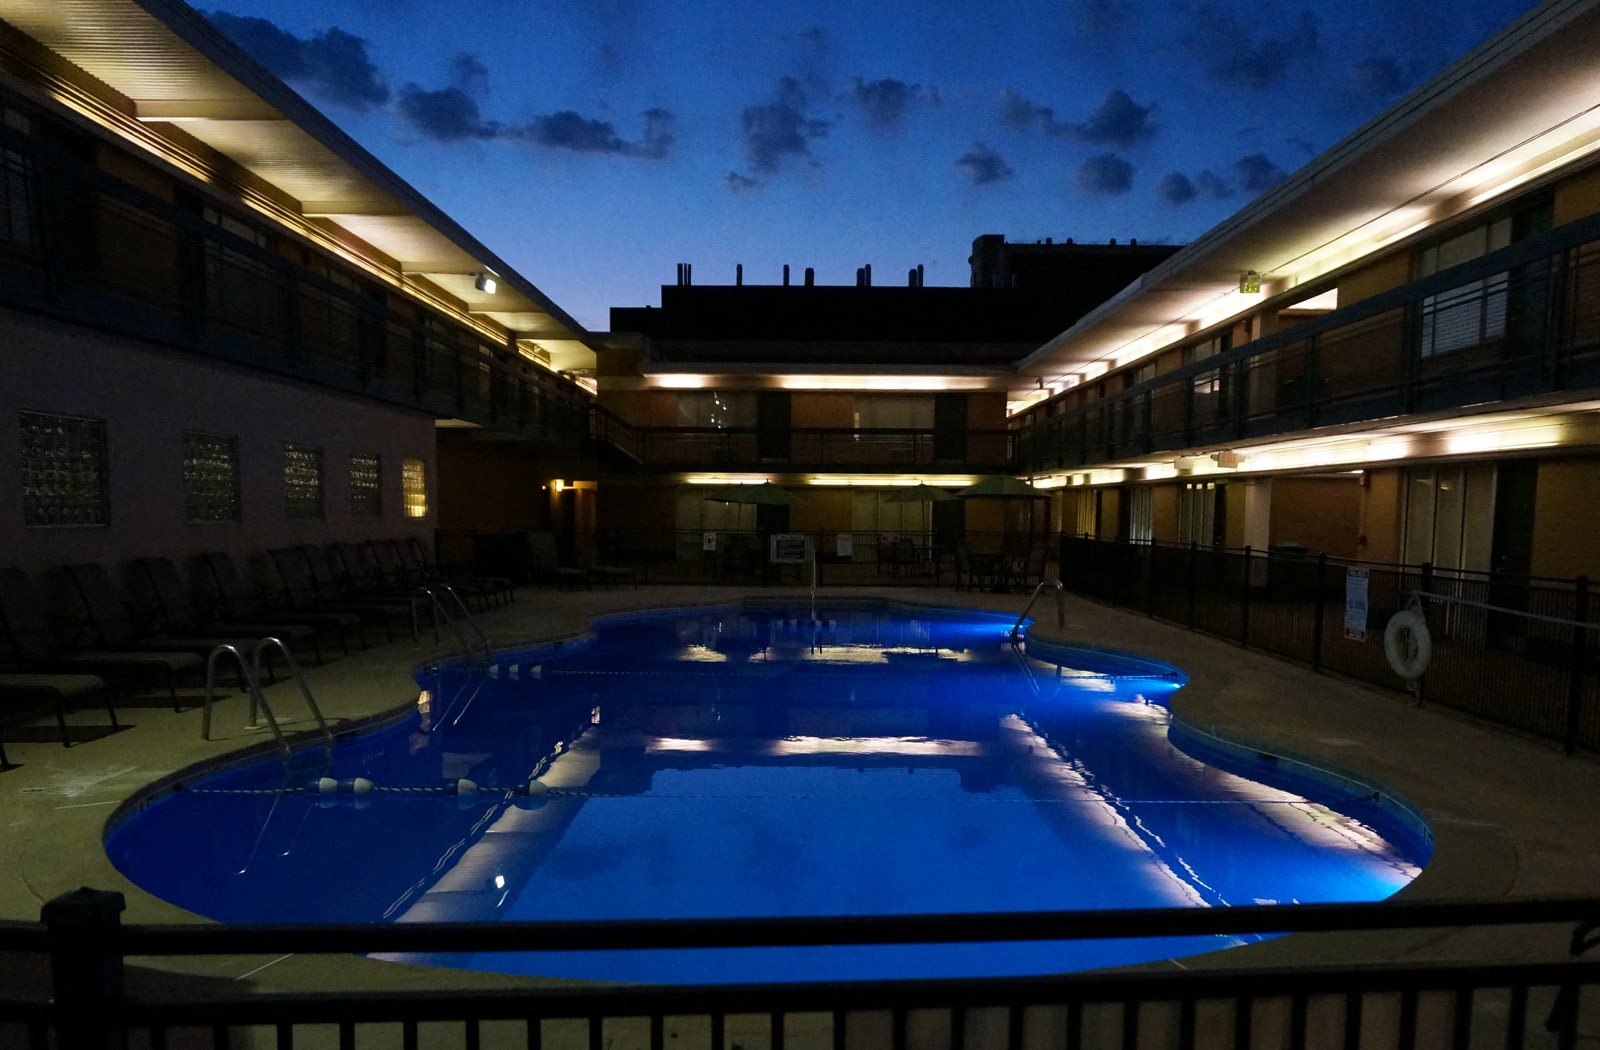 University place apartments in birmingham al University of birmingham swimming pool